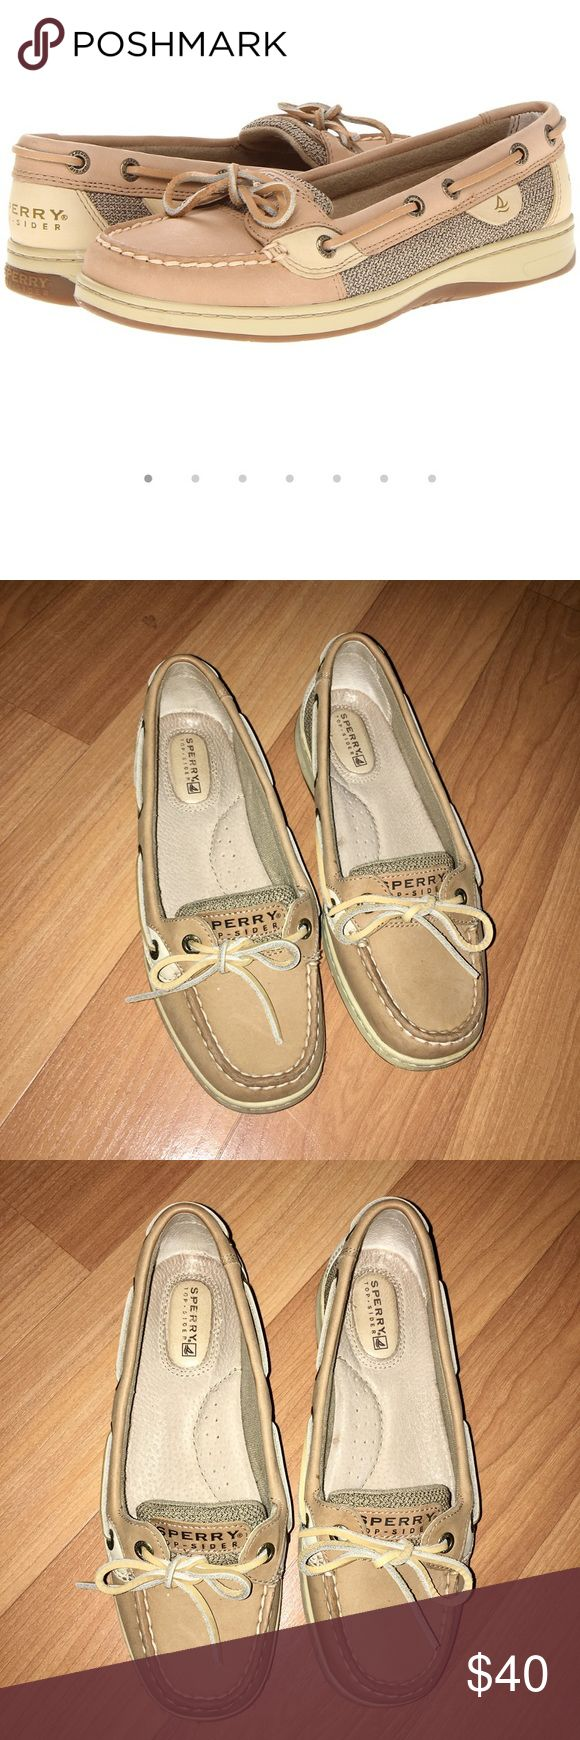 Sperry Angelfish Boat Shoes Color: Linen/ Oat. Worn no more than 5 times. Good condition. No shoe box. Sperry Shoes